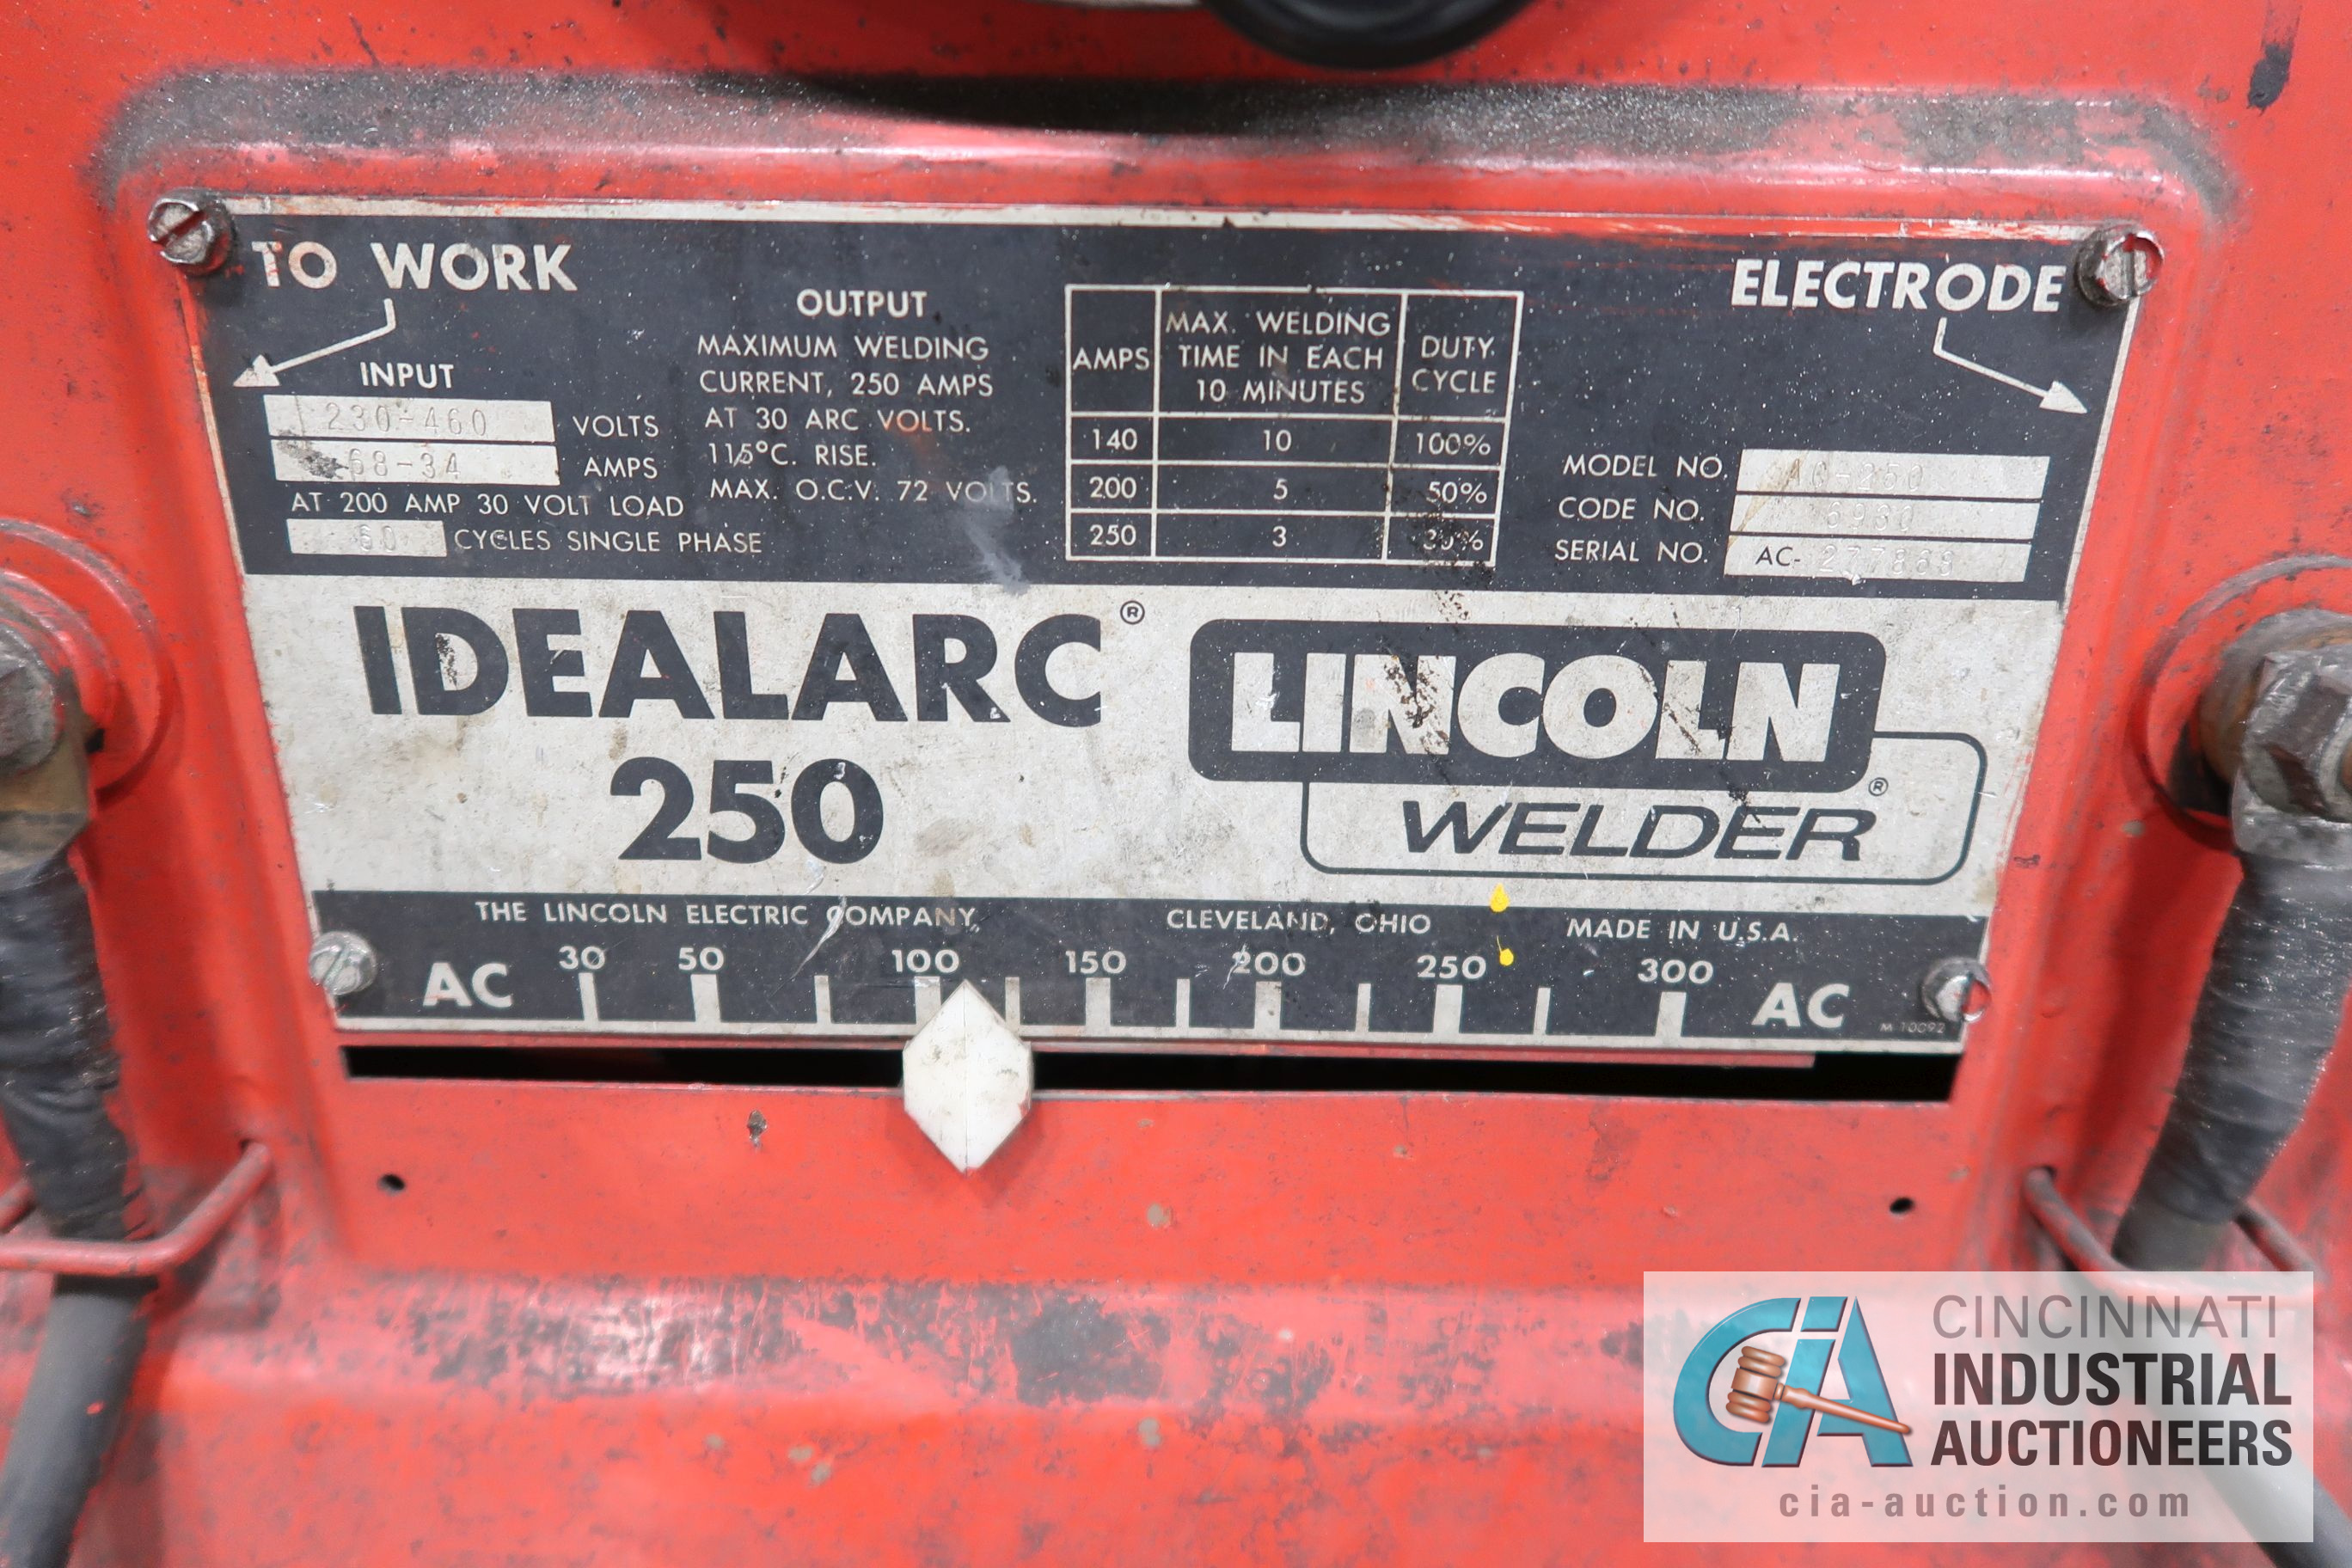 200 AMP LINCOLN IDEALARC 250 WELDER - Image 2 of 2